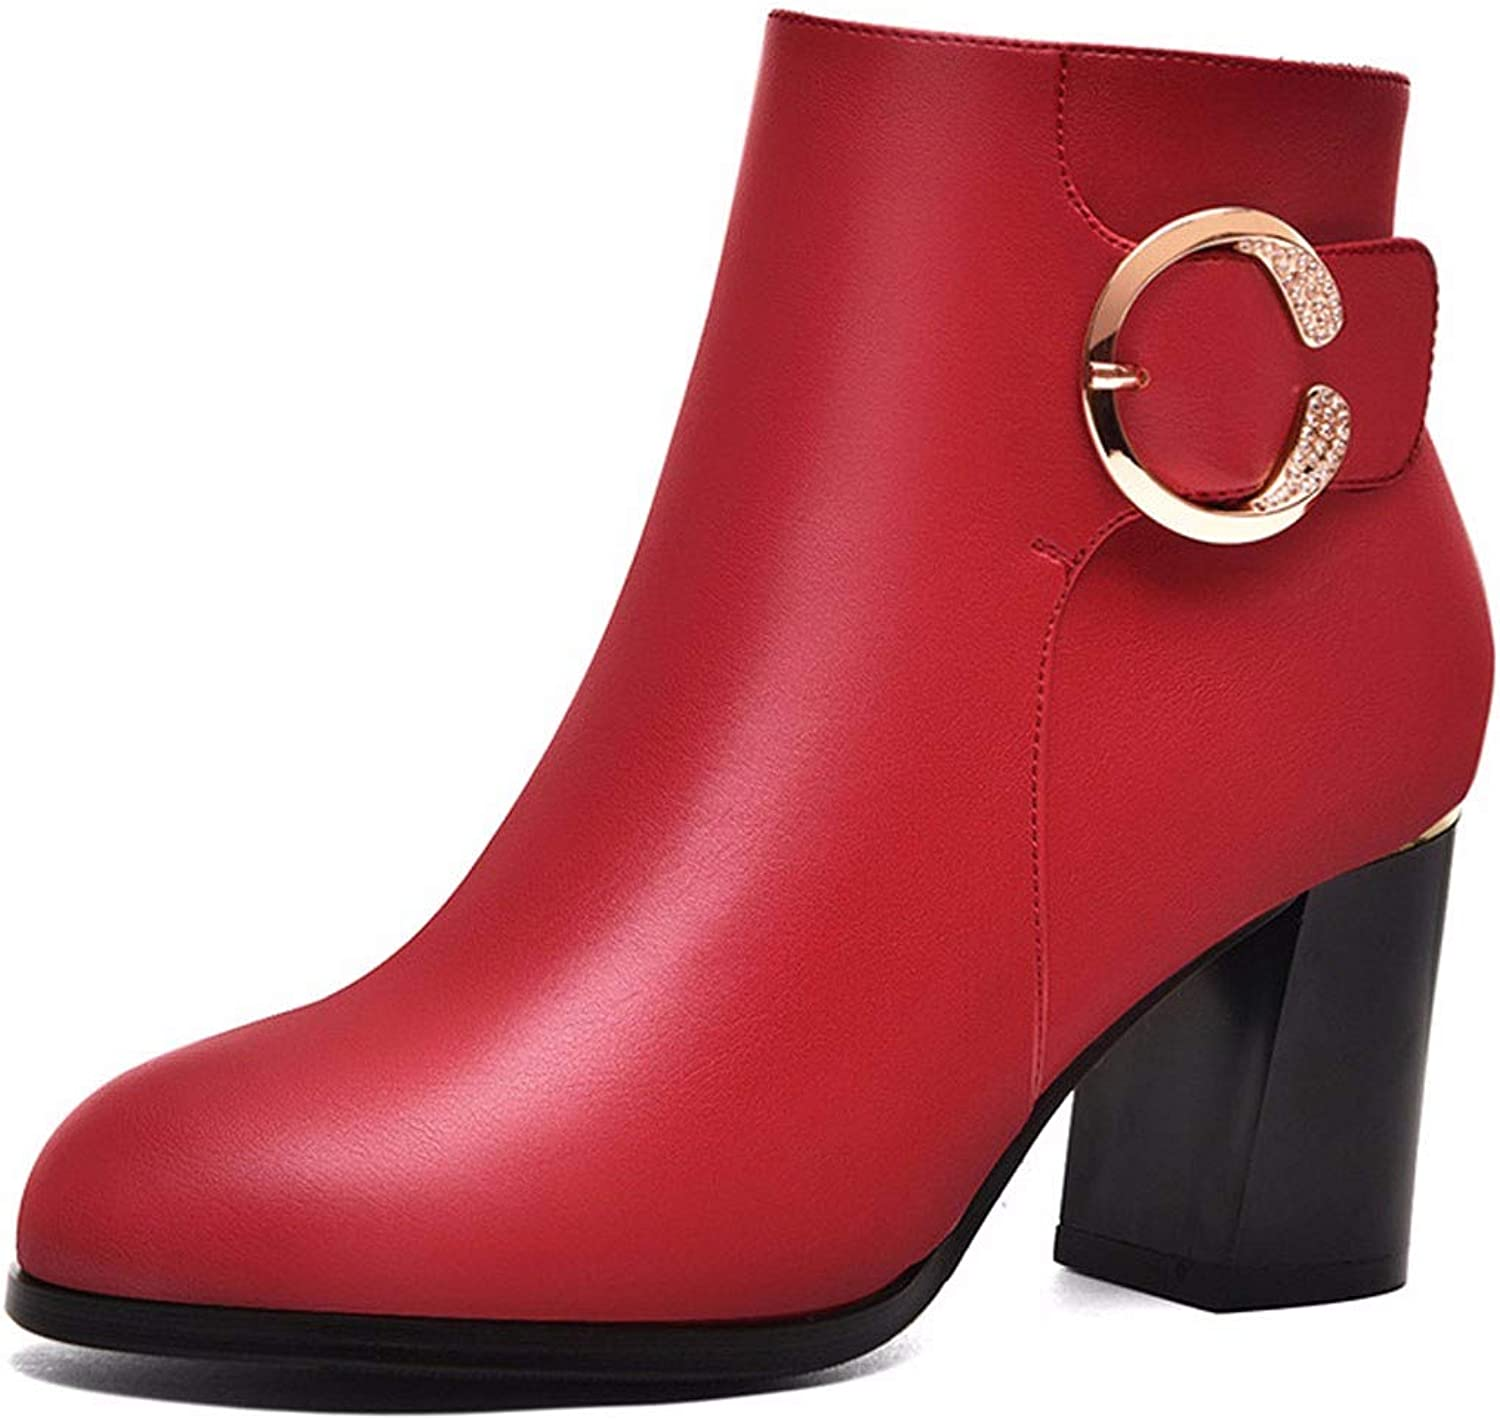 GTVERNH Women's shoes 7Cm High Heels Short Boots gold Wire Autumn and Winter Red High Heels Martin Boots Velvet Boots Winter shoes.